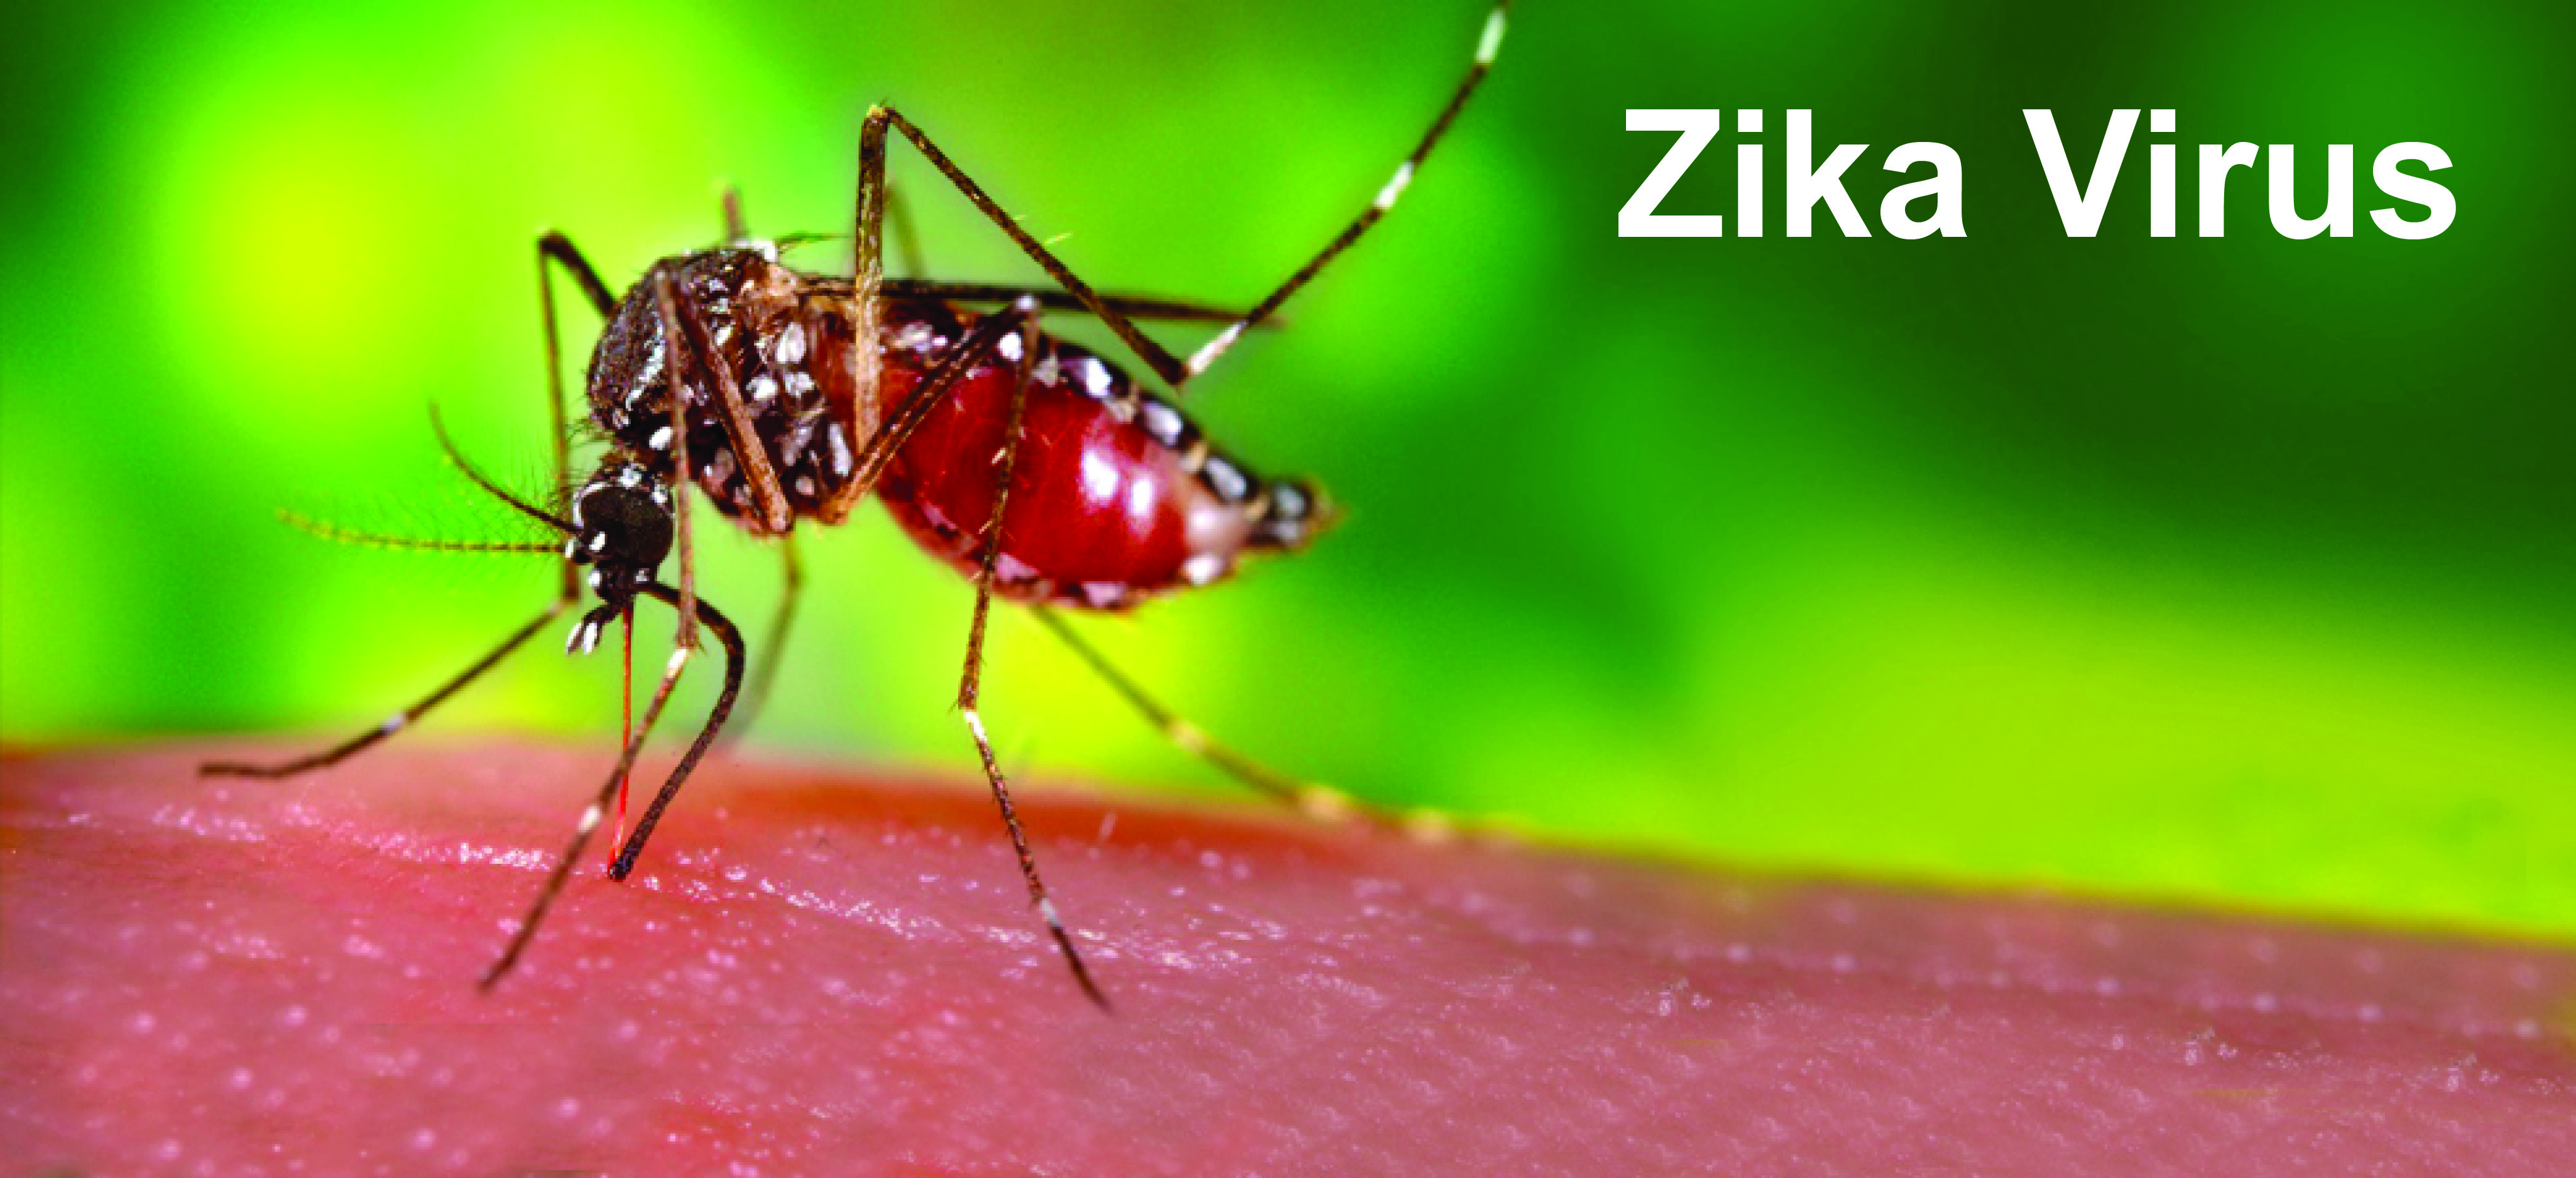 Zika Virus May Lead To a Miscarriage in Pregnant Women